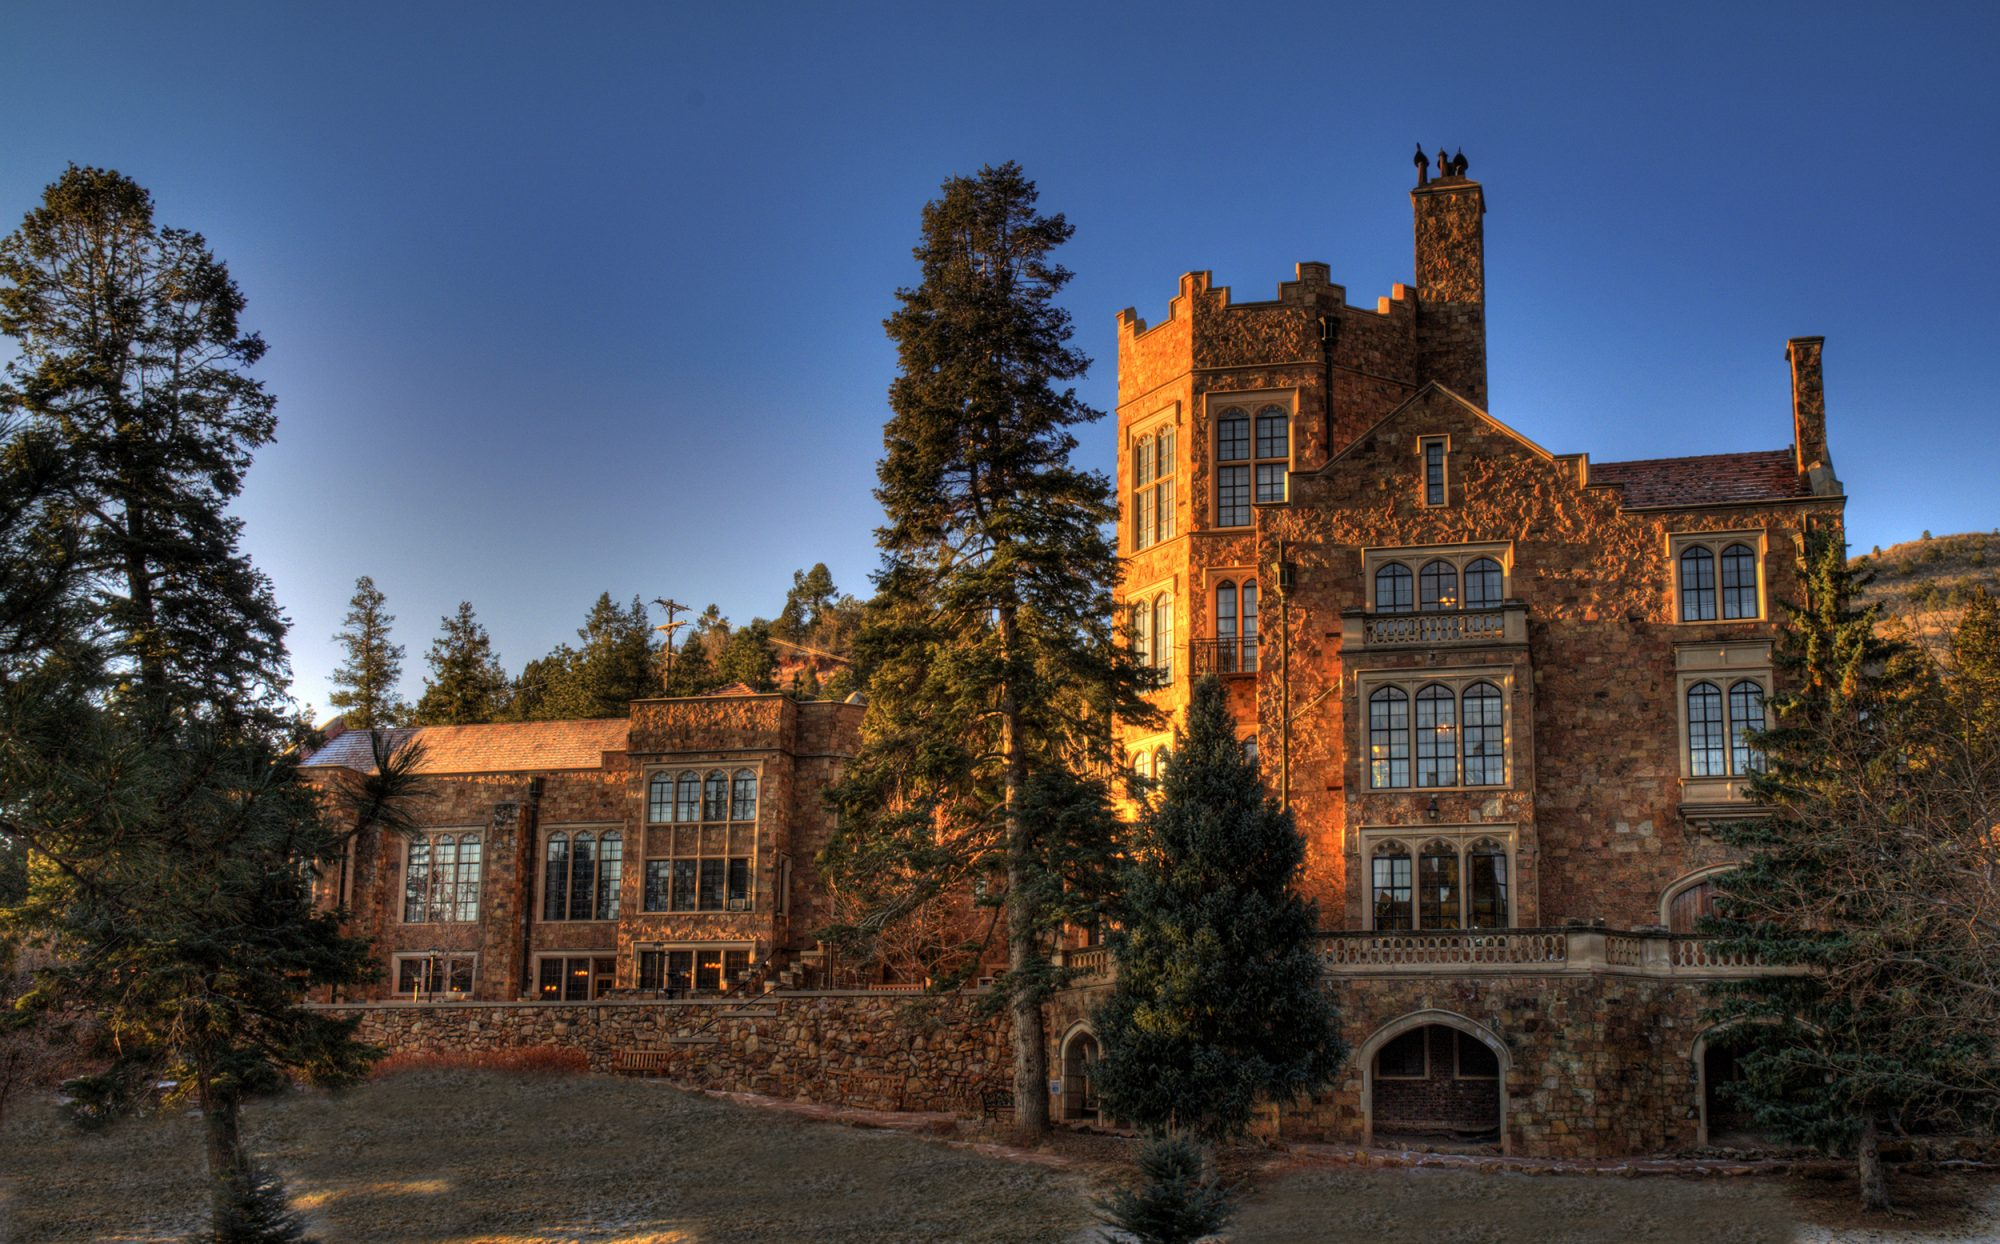 Glen Eyrie Castle in Colorado Springs, Colorado